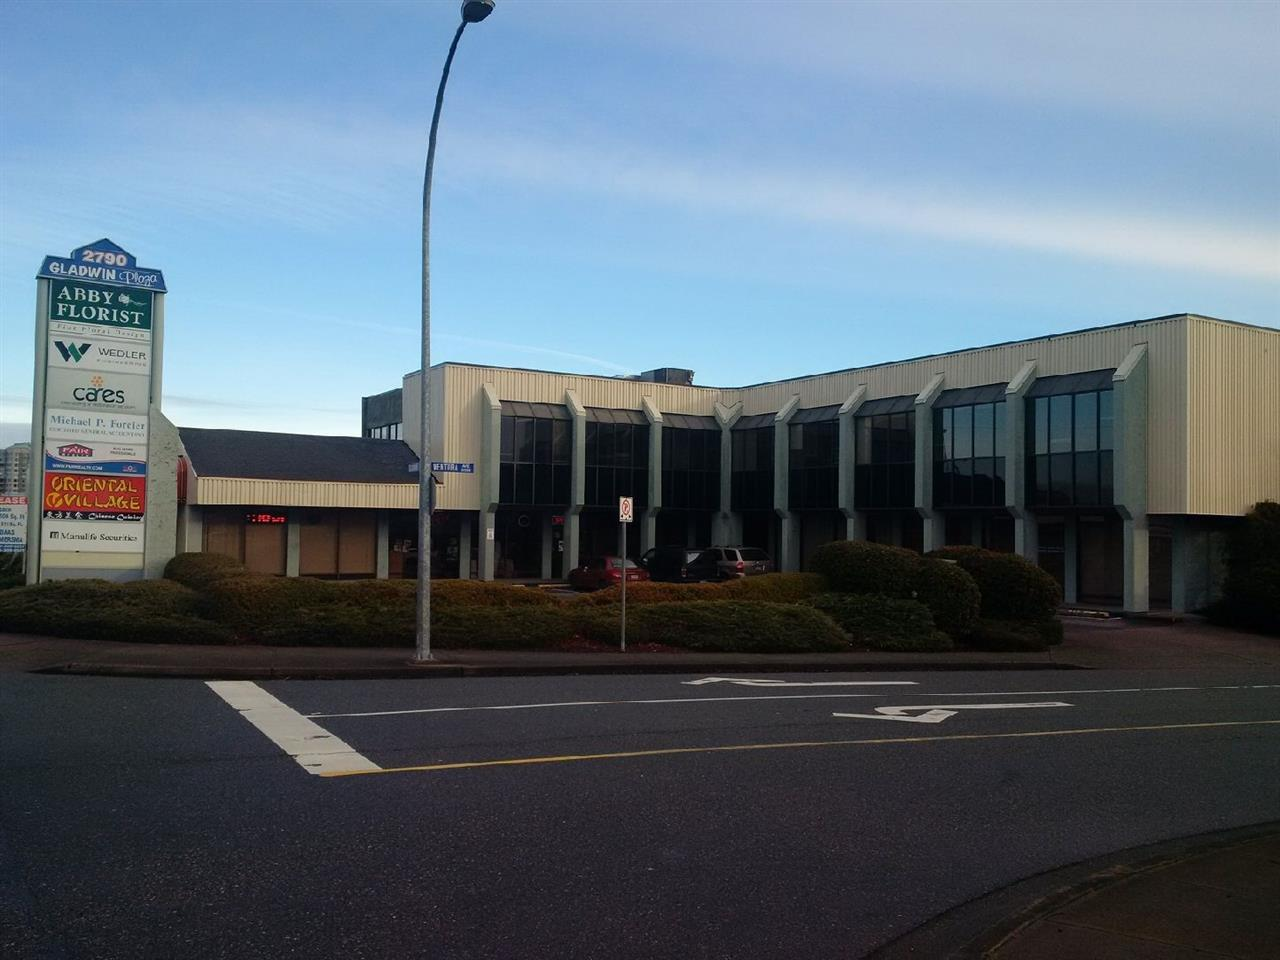 Located off South Fraser Way this office building has space available from 860 sq.ft. to +/- 8000. Spaces available on ground floor and second floor. Located in Central Abbotsford, close to the intersection of South Fraser Way and Gladwin Road. Has underground parking and is walking distance to restaurants and malls.